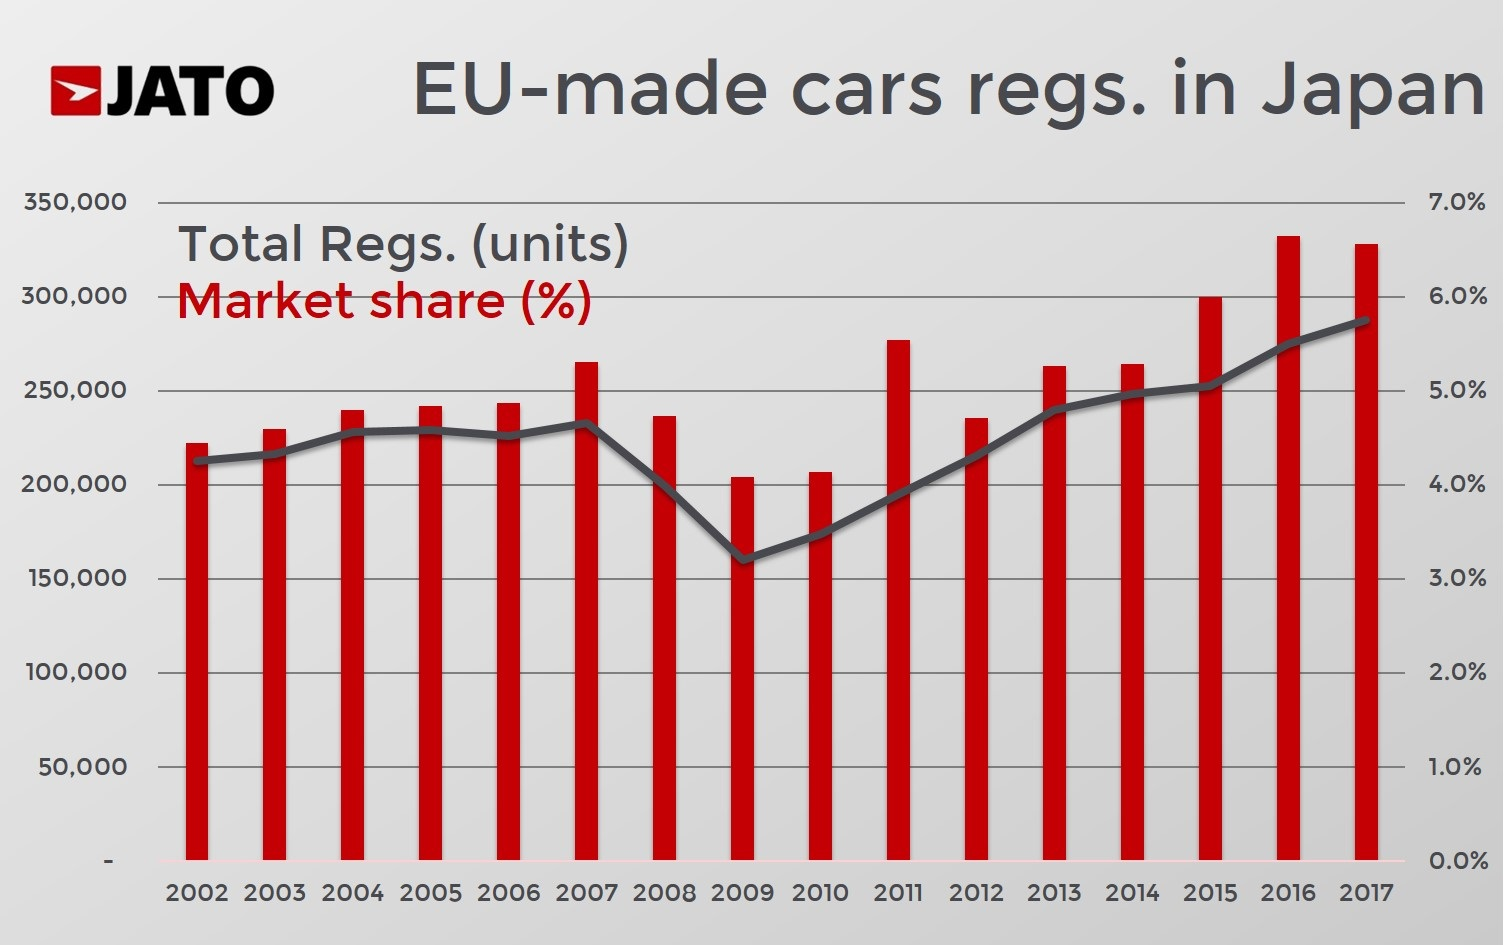 Small & midsize Japanese car makers to benefit the most from EU